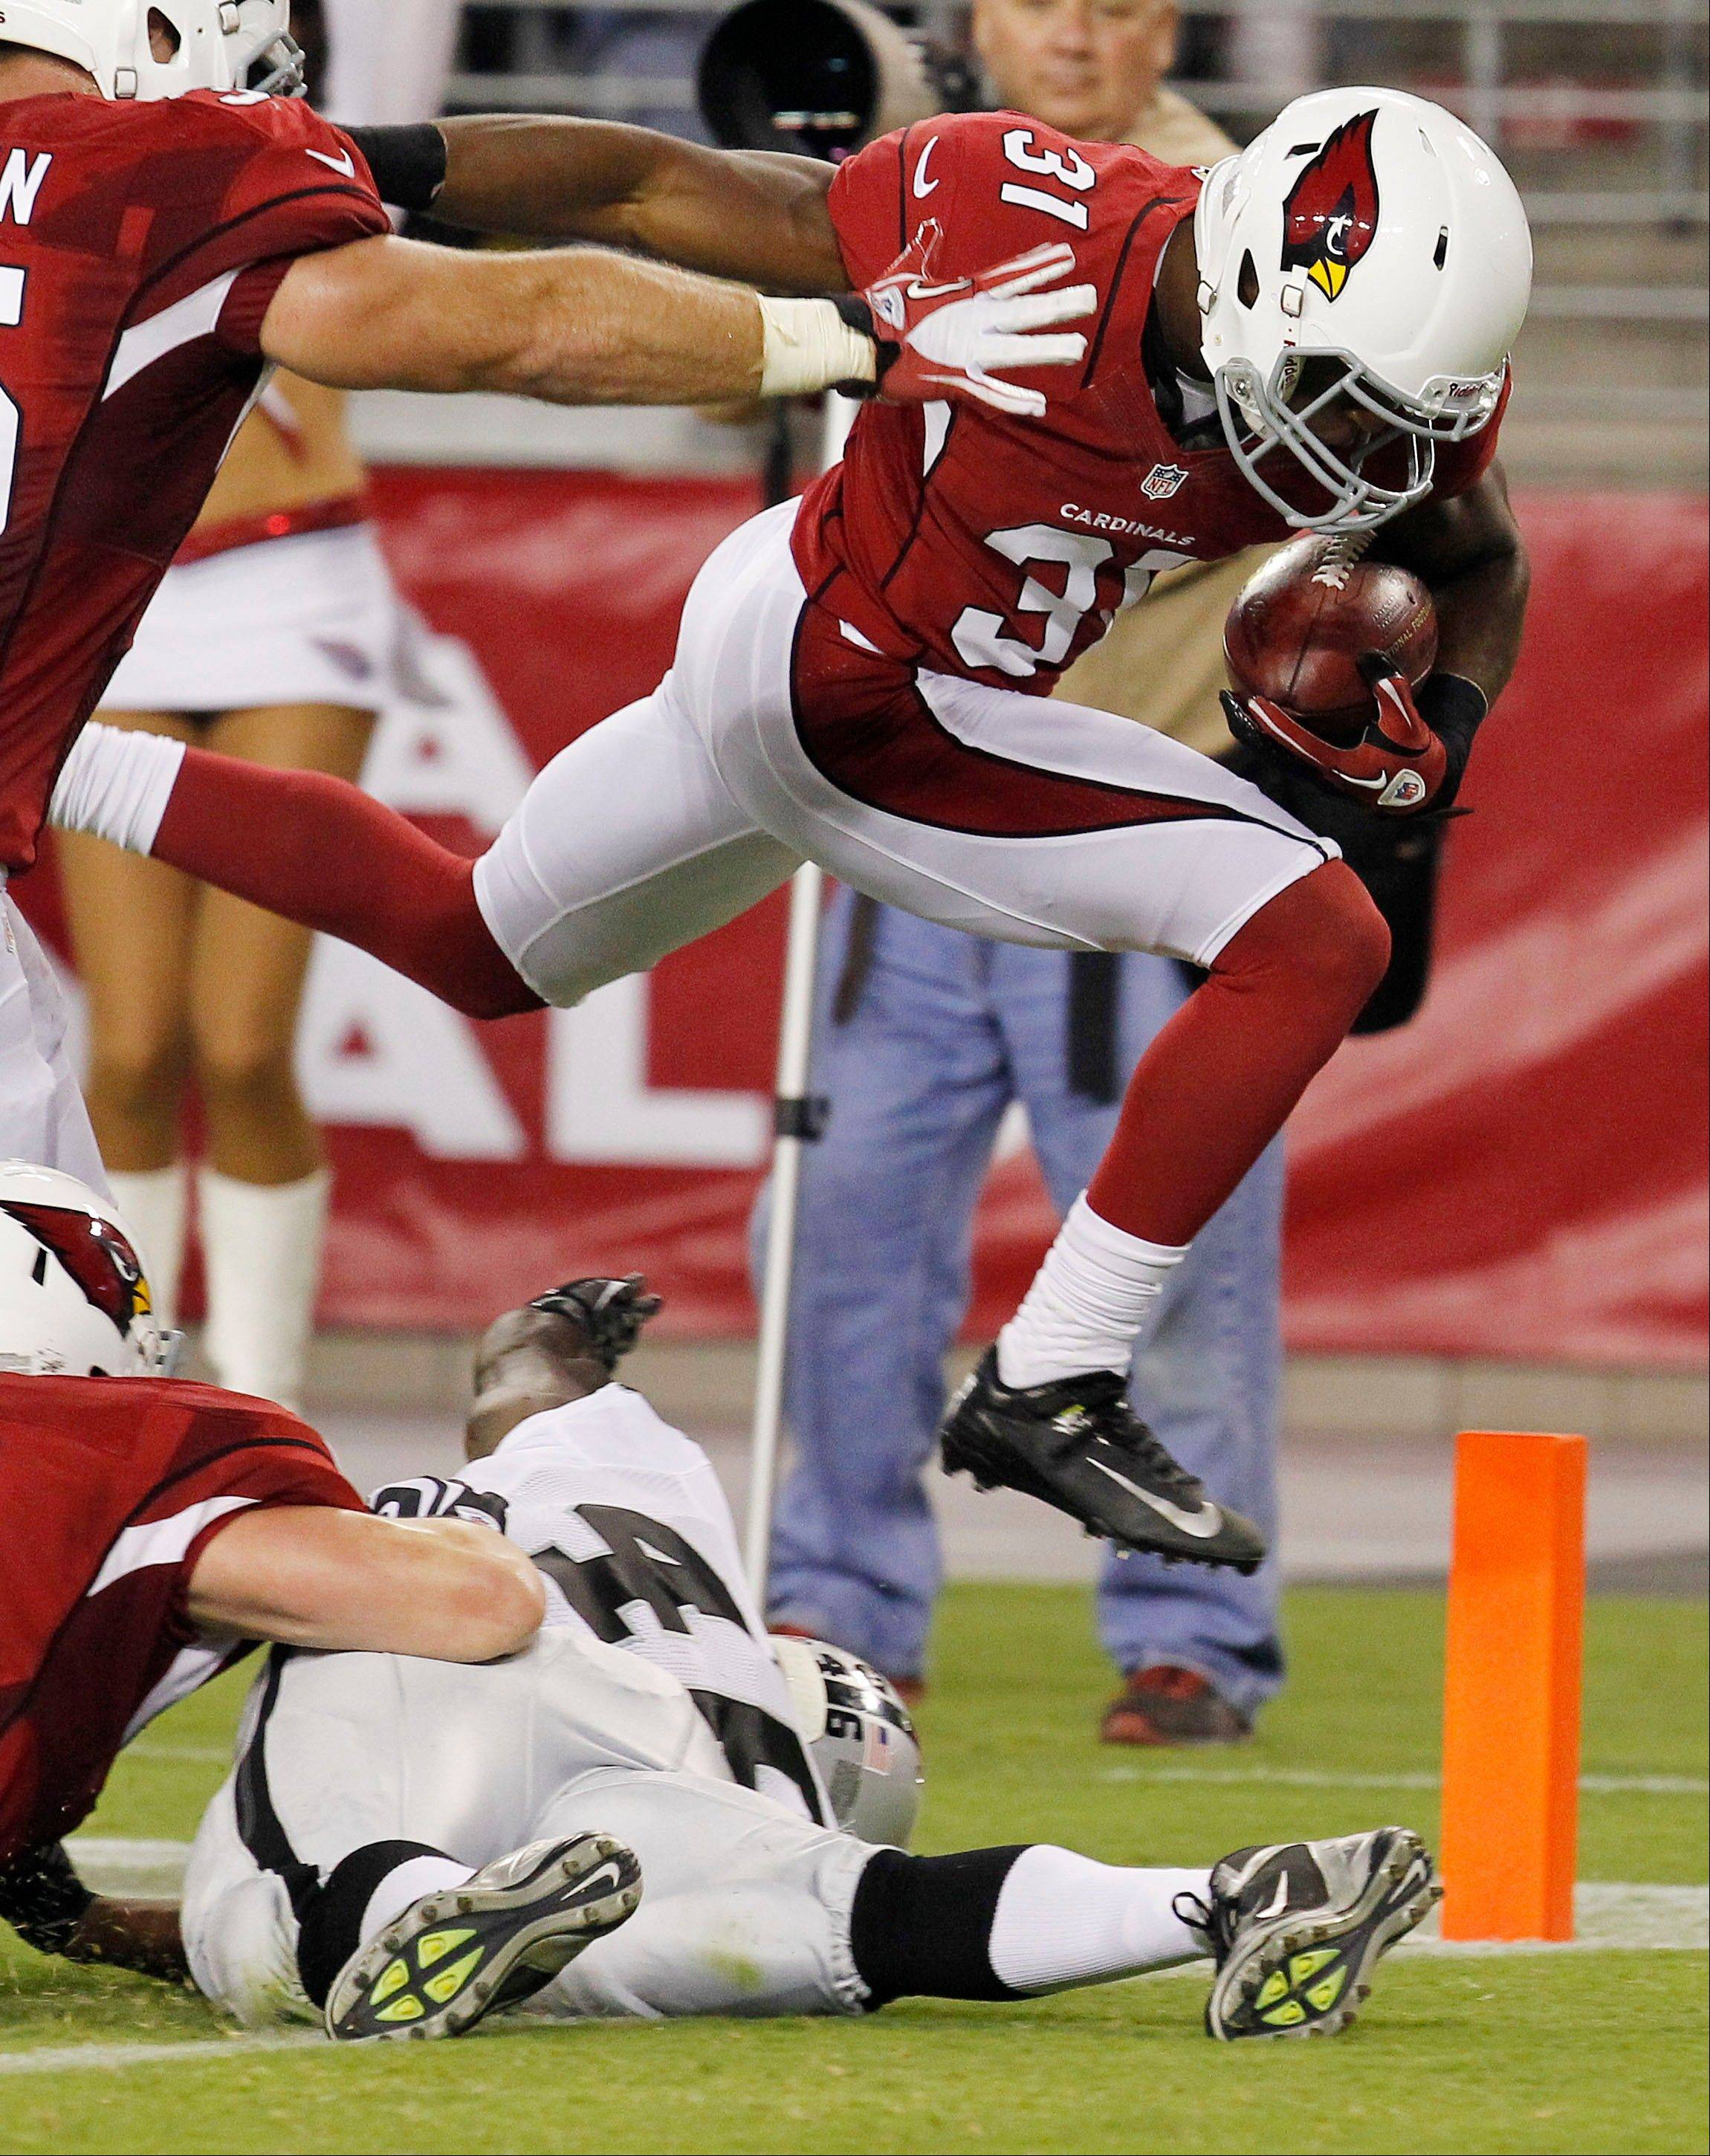 The Cardinals' Justin Bethel leaps over Oakland's Lonyae Miller and into the end zone for a touchdown after blocking a punt Friday in a preseason game in Glendale, Ariz.